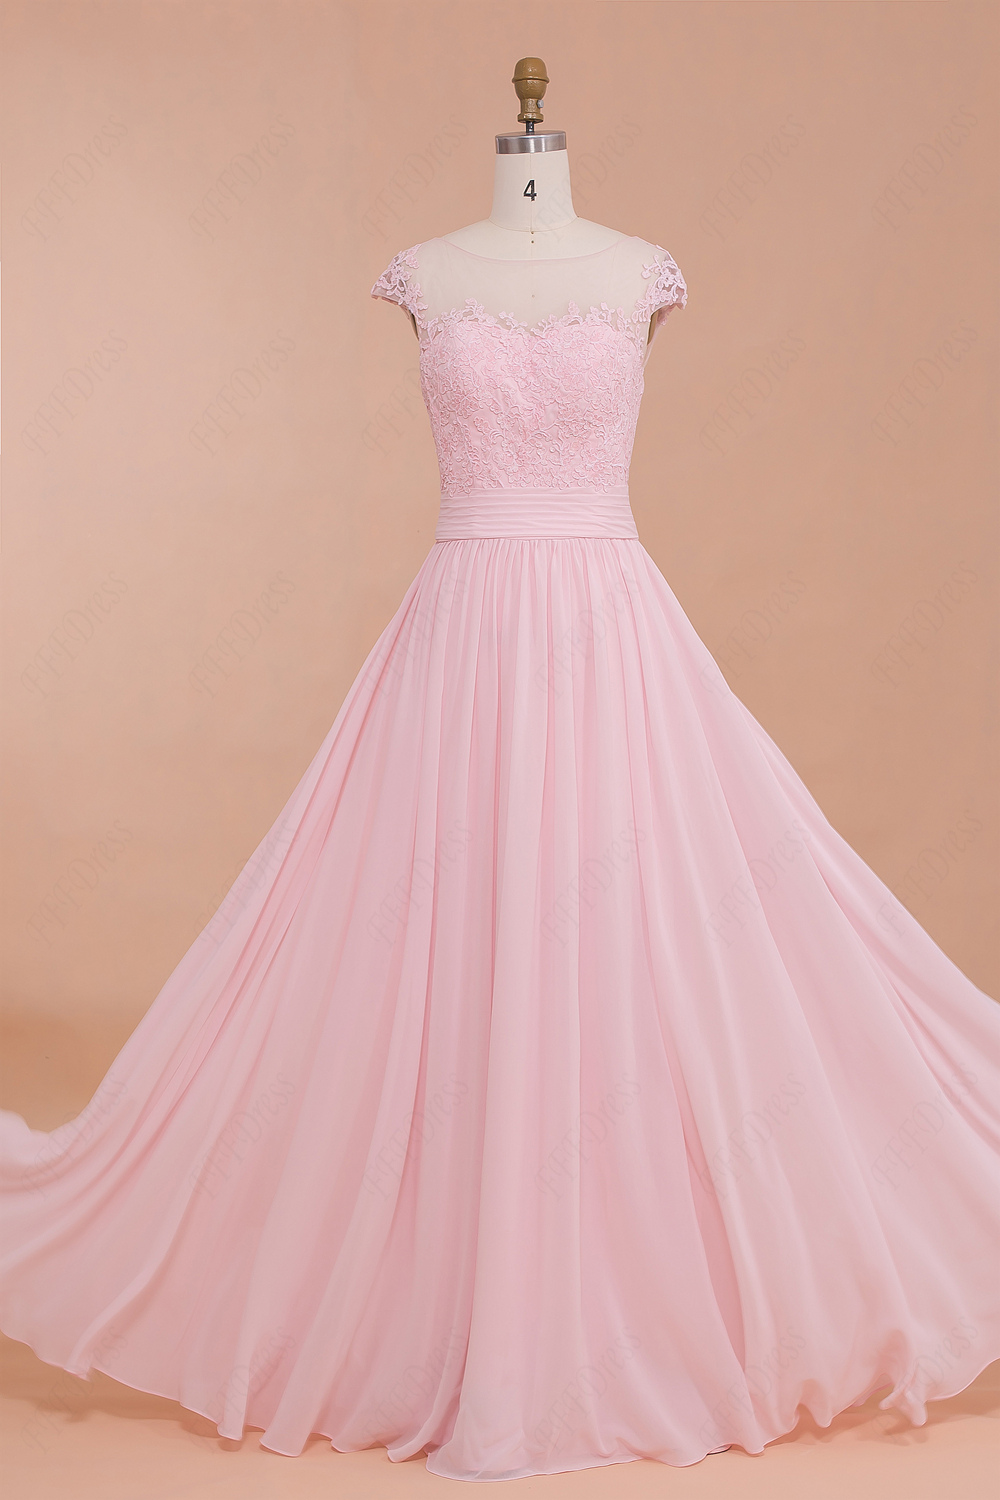 Classy Modest Pink Prom Dresses,Cap Sleeves Bridesmaid Dresses ...